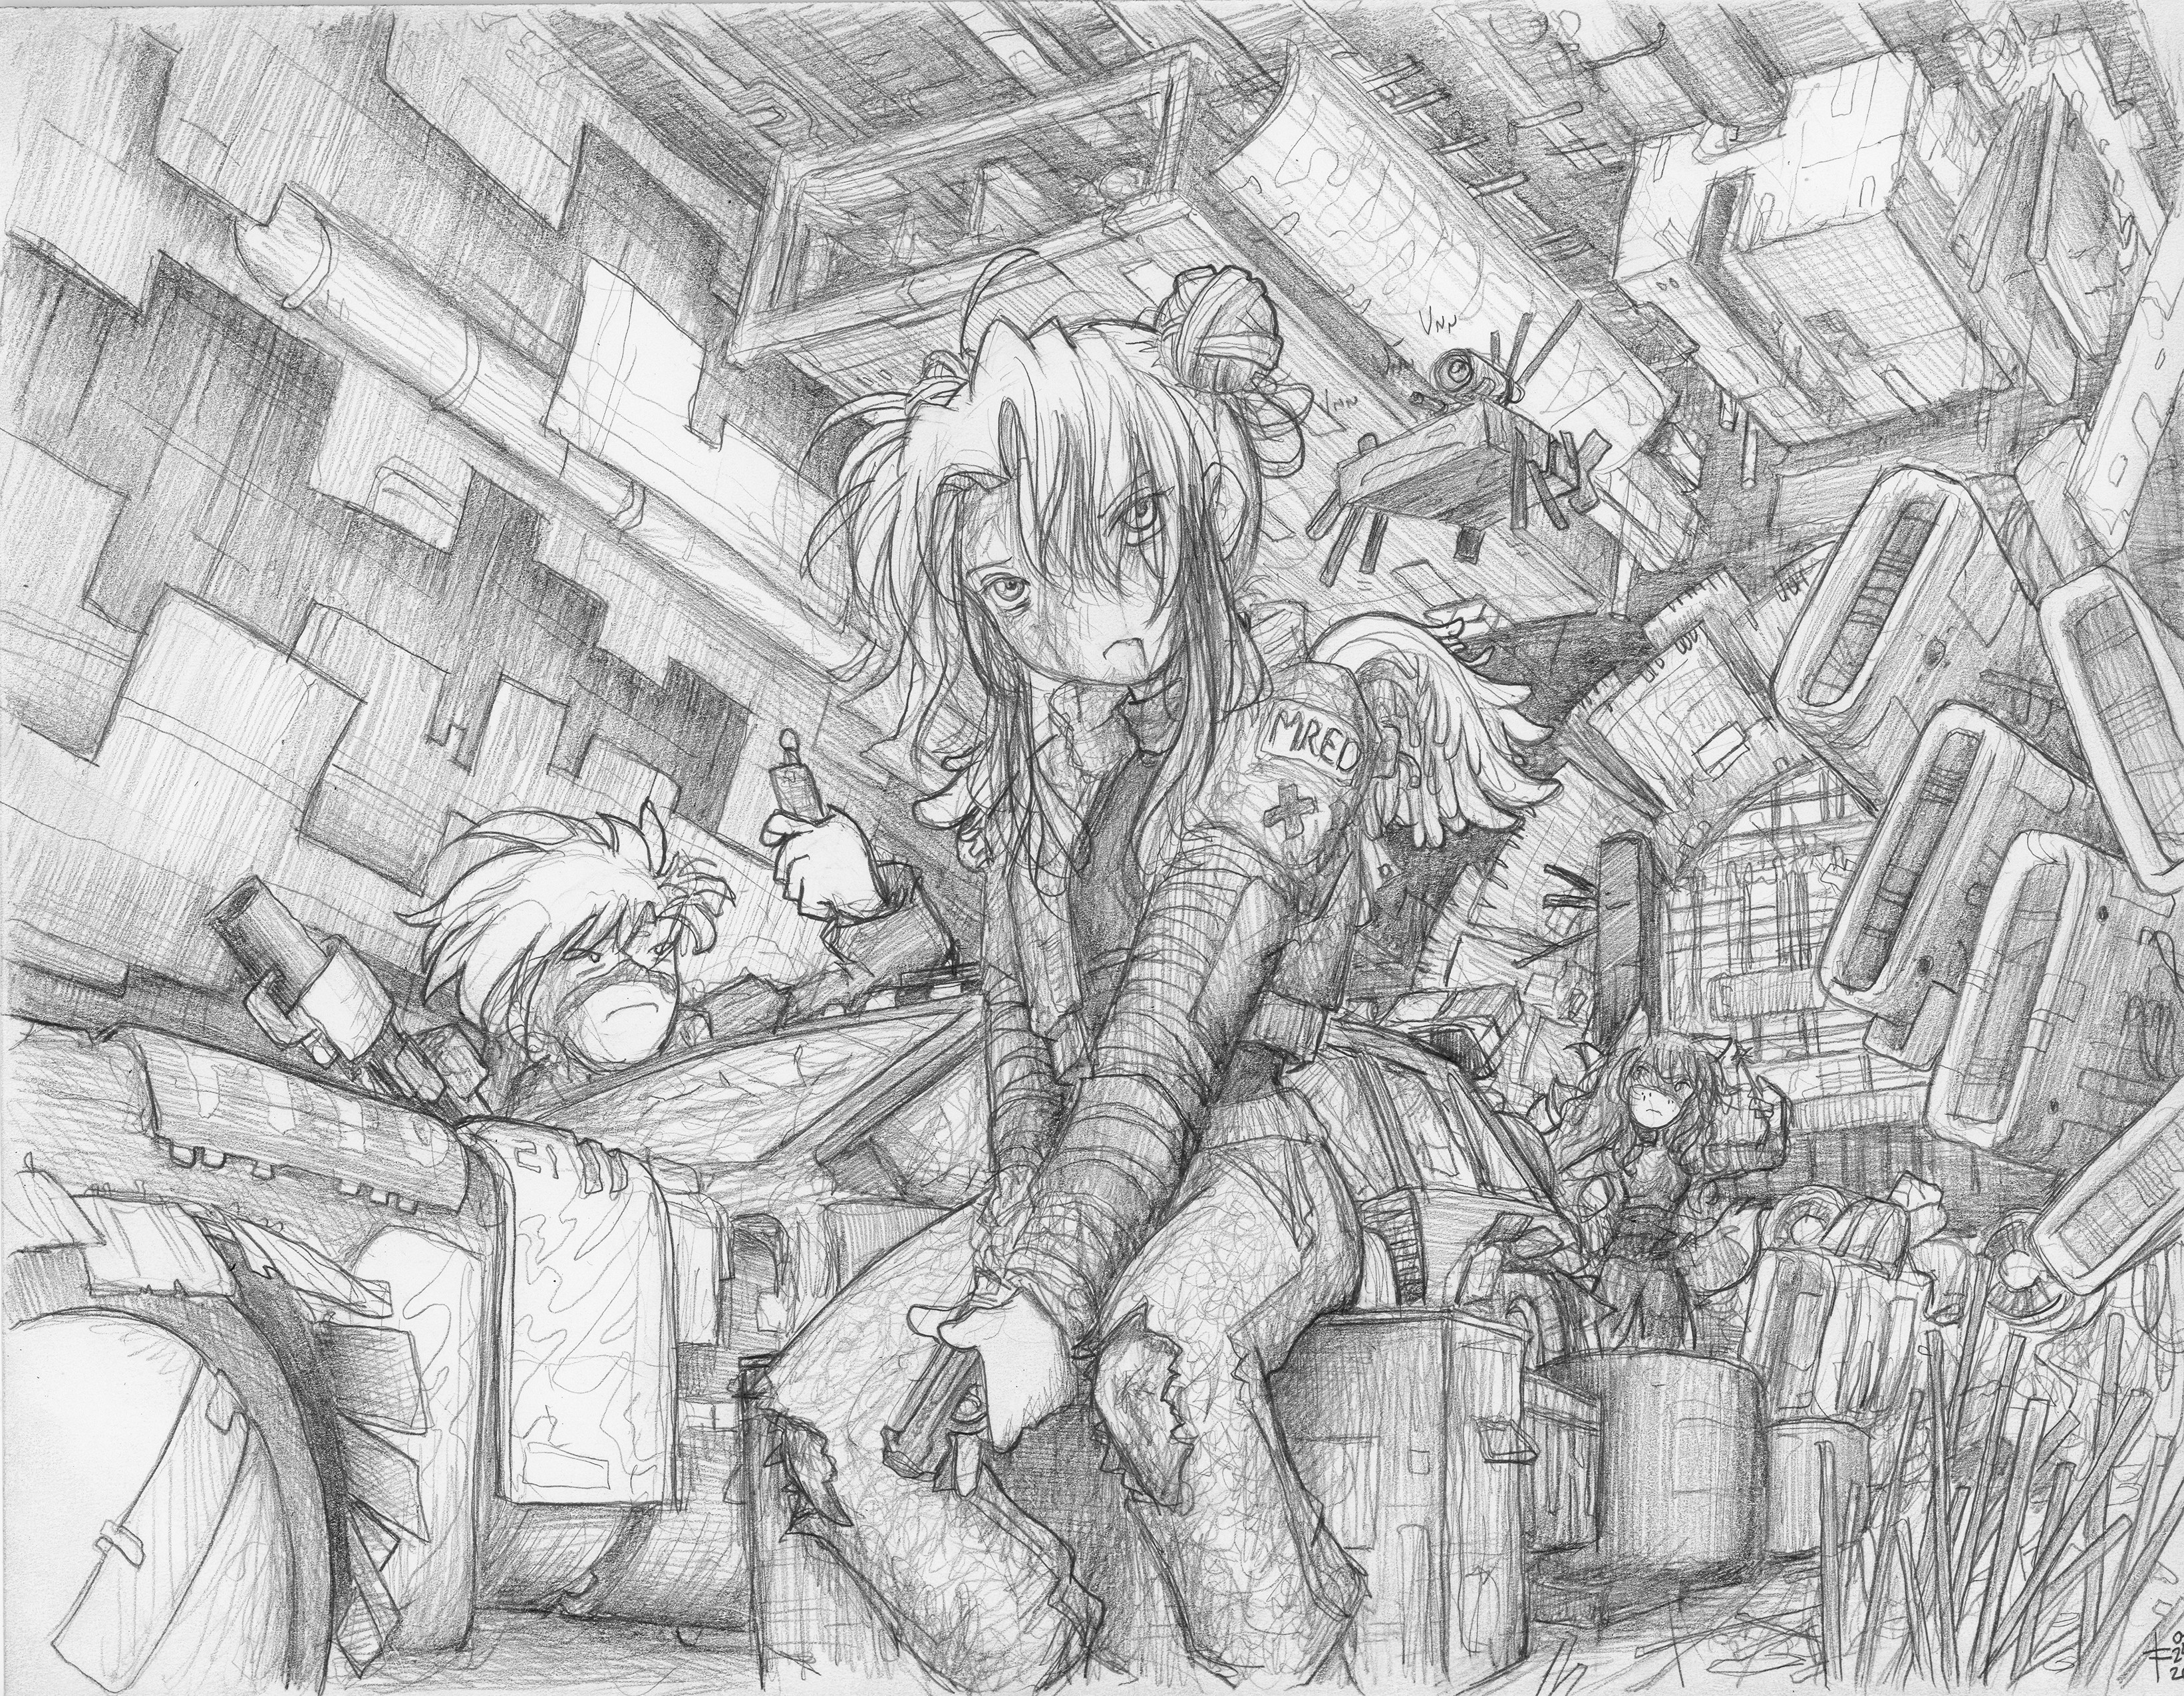 Pencil (HB) on HP Bright White Inkjet Paper - final render (no color for this one)